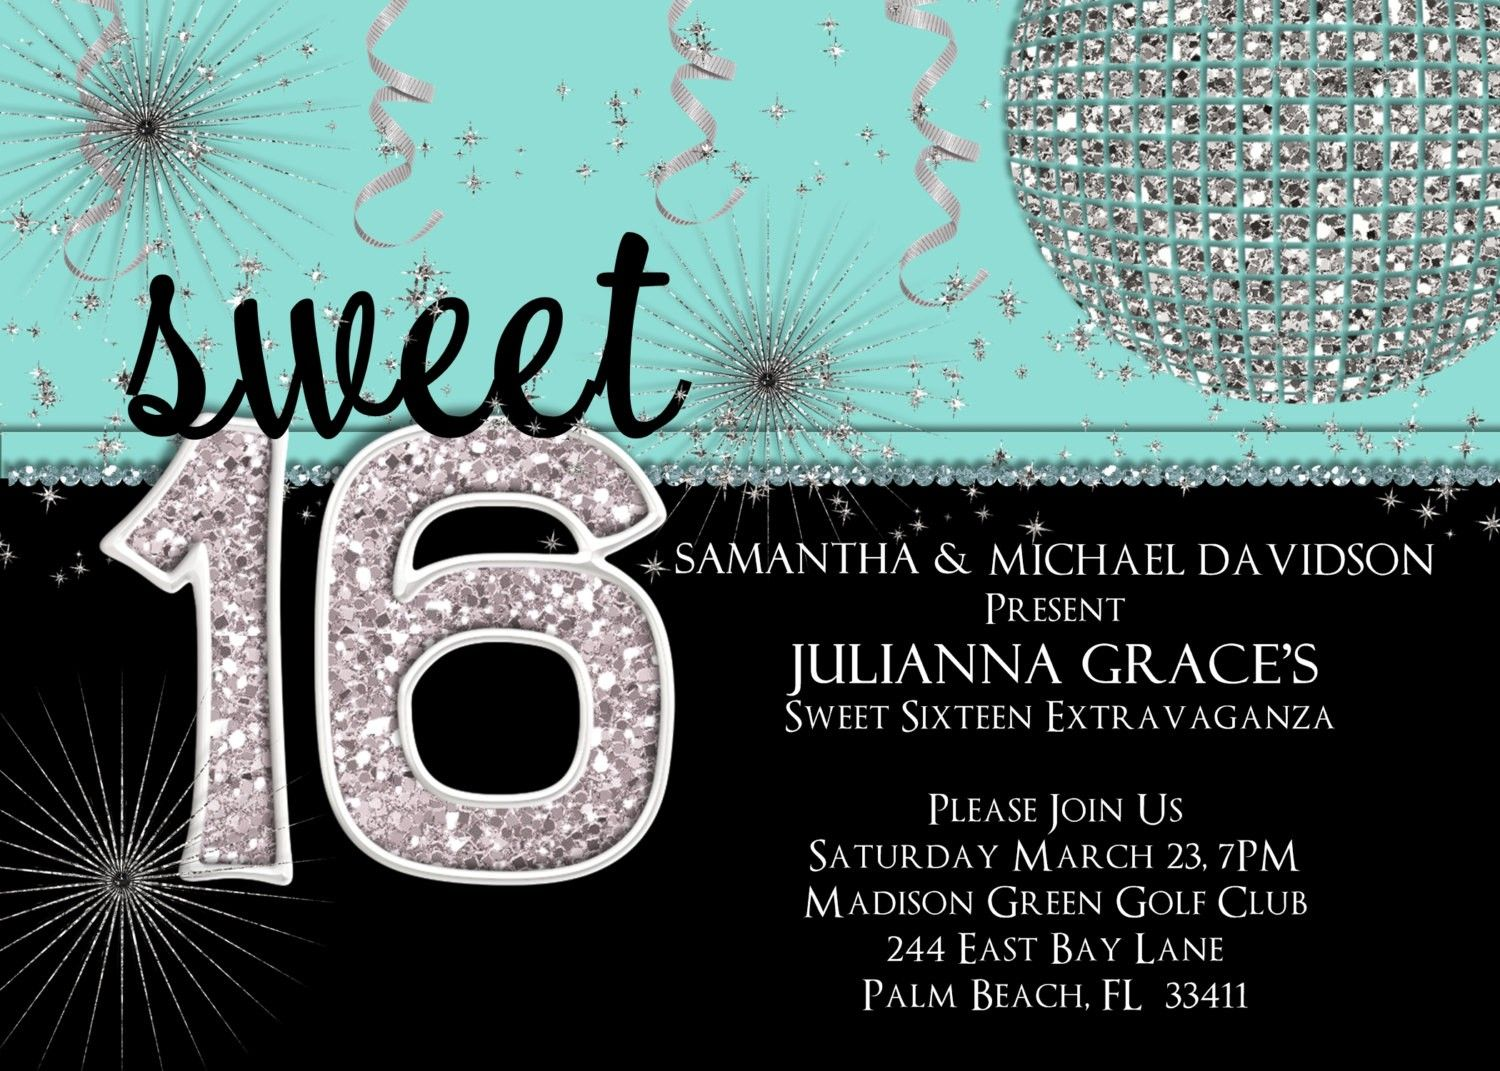 Sweet 16 Party Invitations Wording